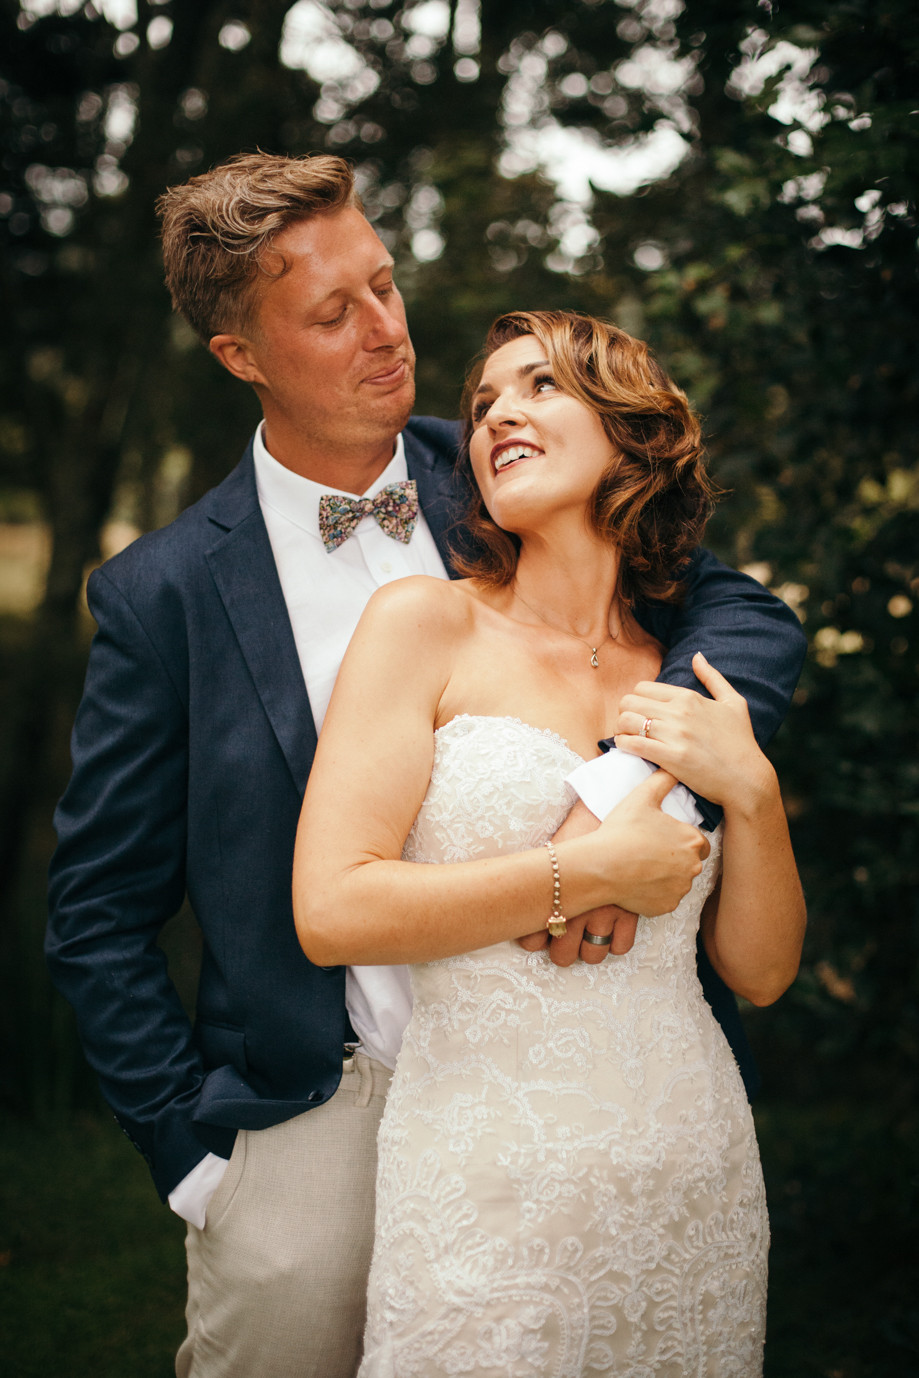 Mike and Elise-188.jpg